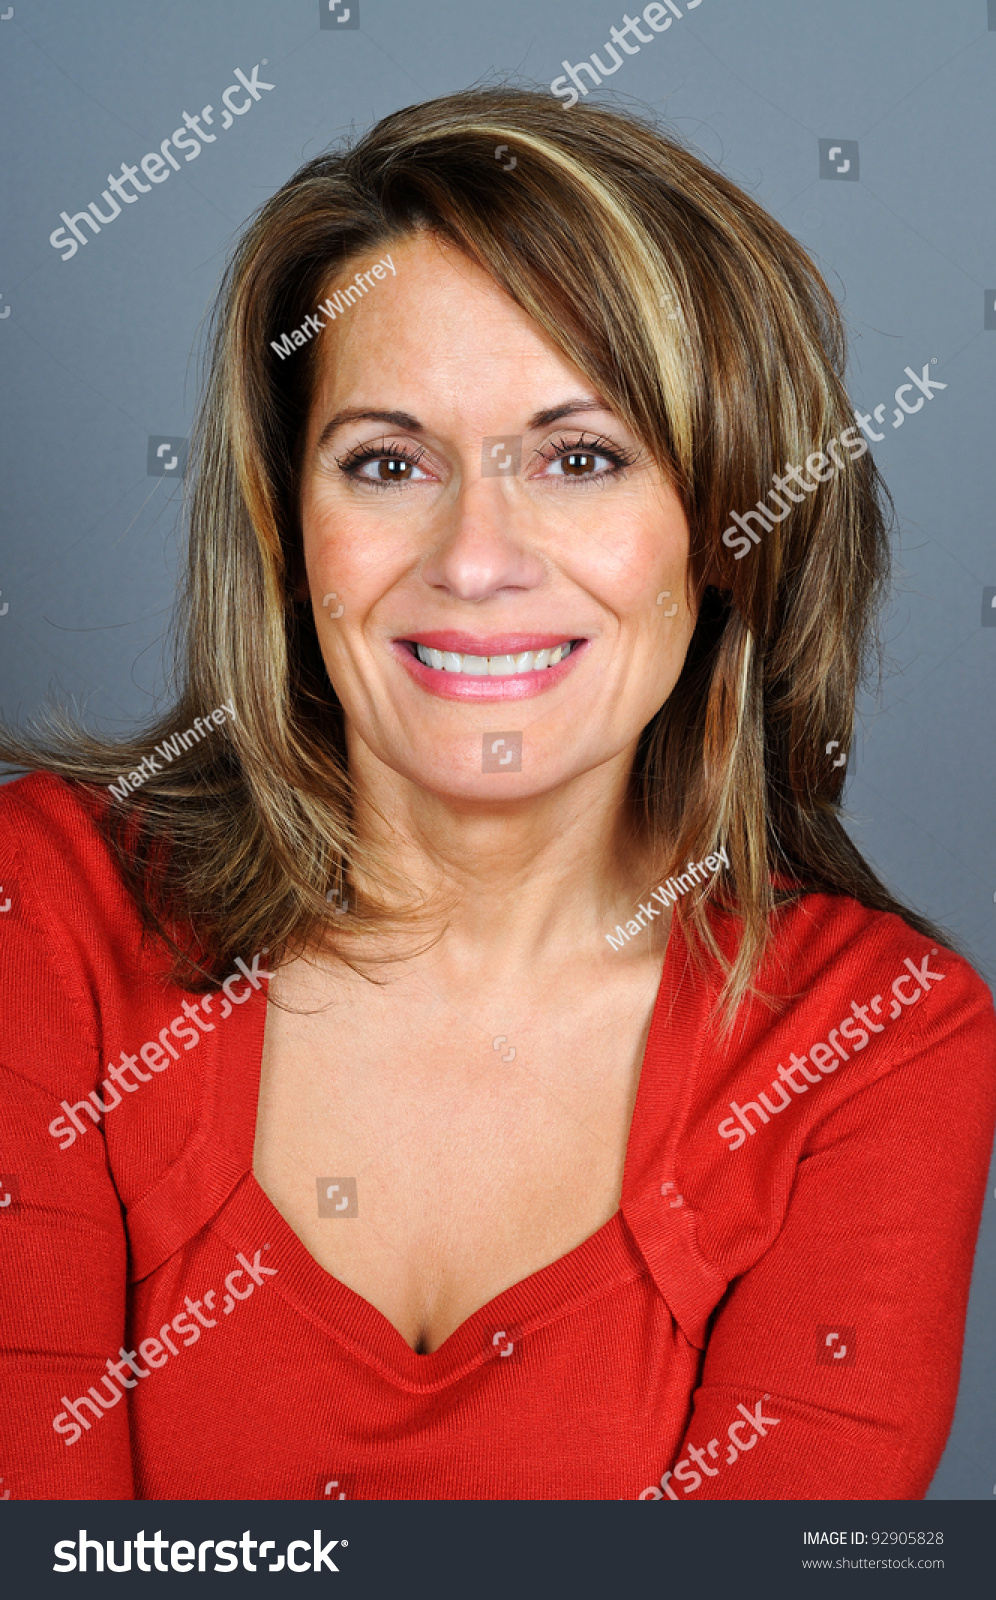 Attractive Middle Aged Woman in Red Sweater